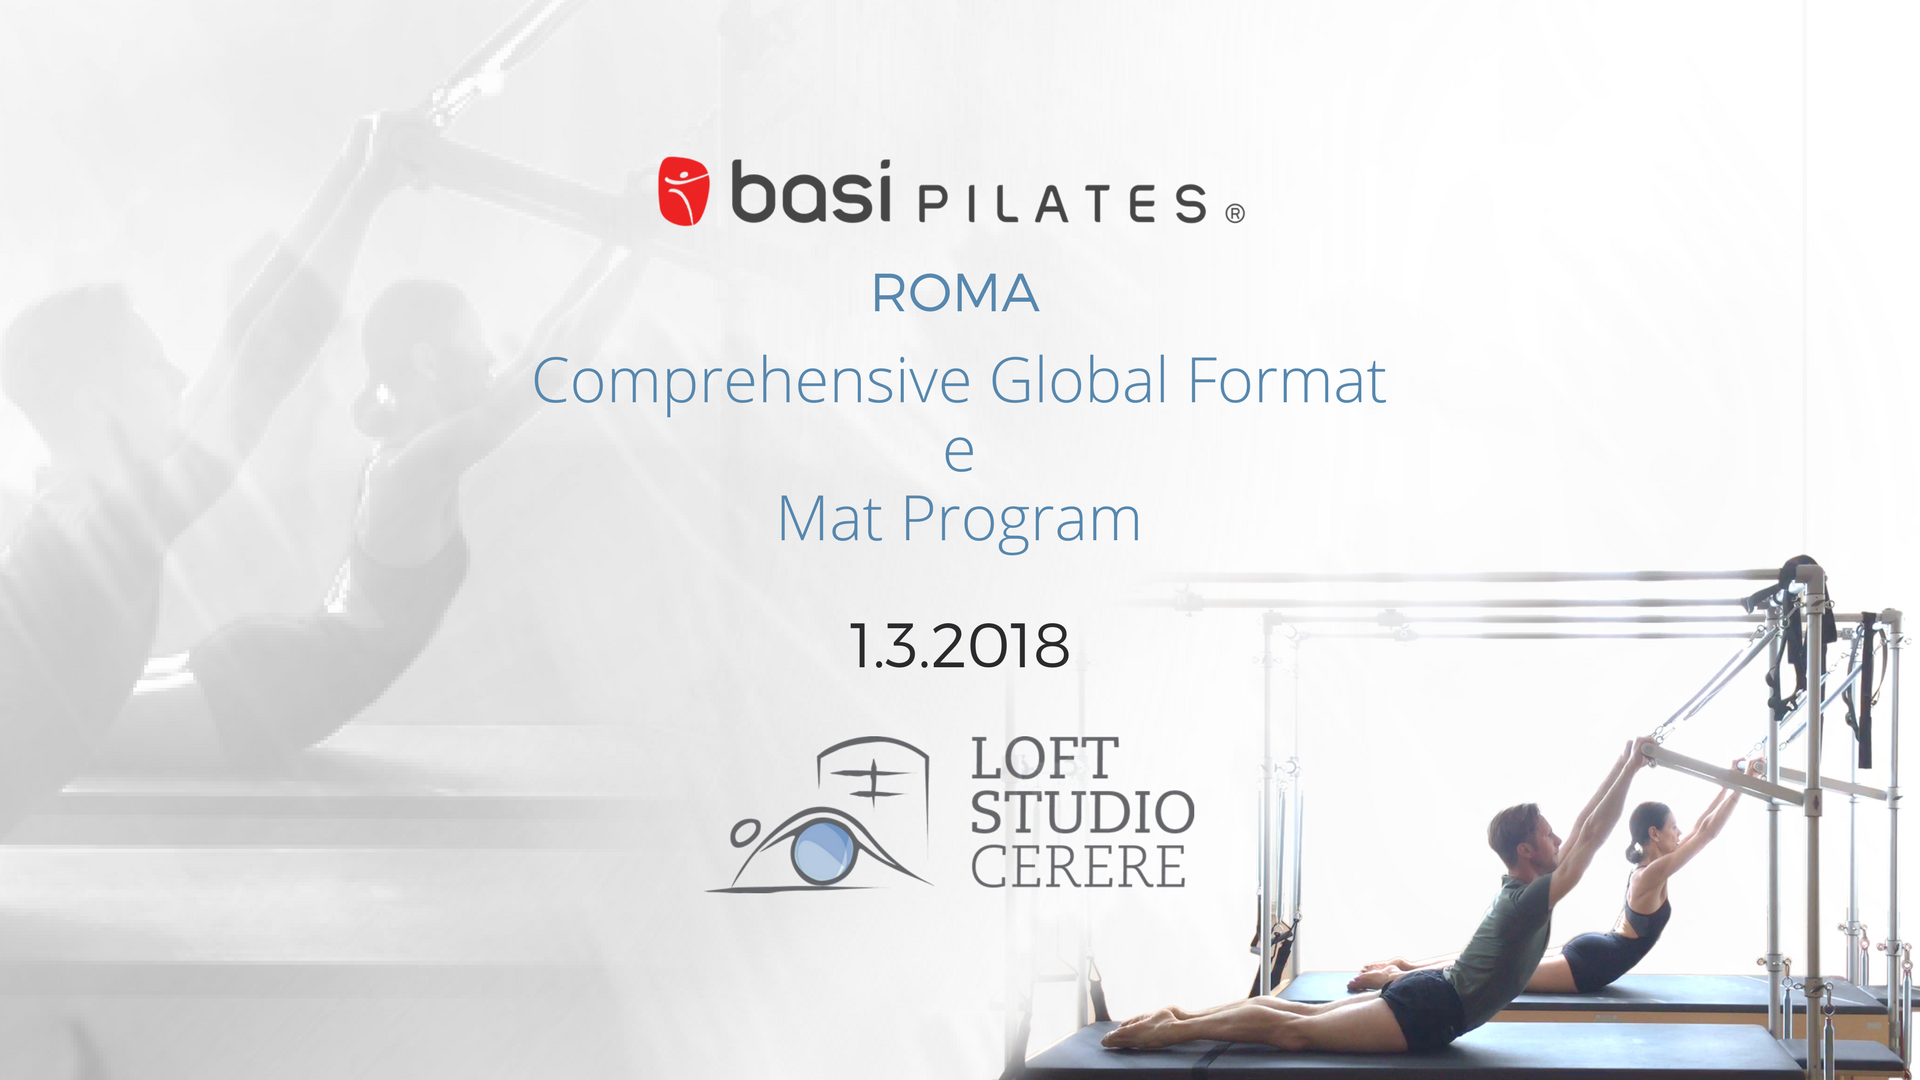 mat toronto program pilates events teaching training